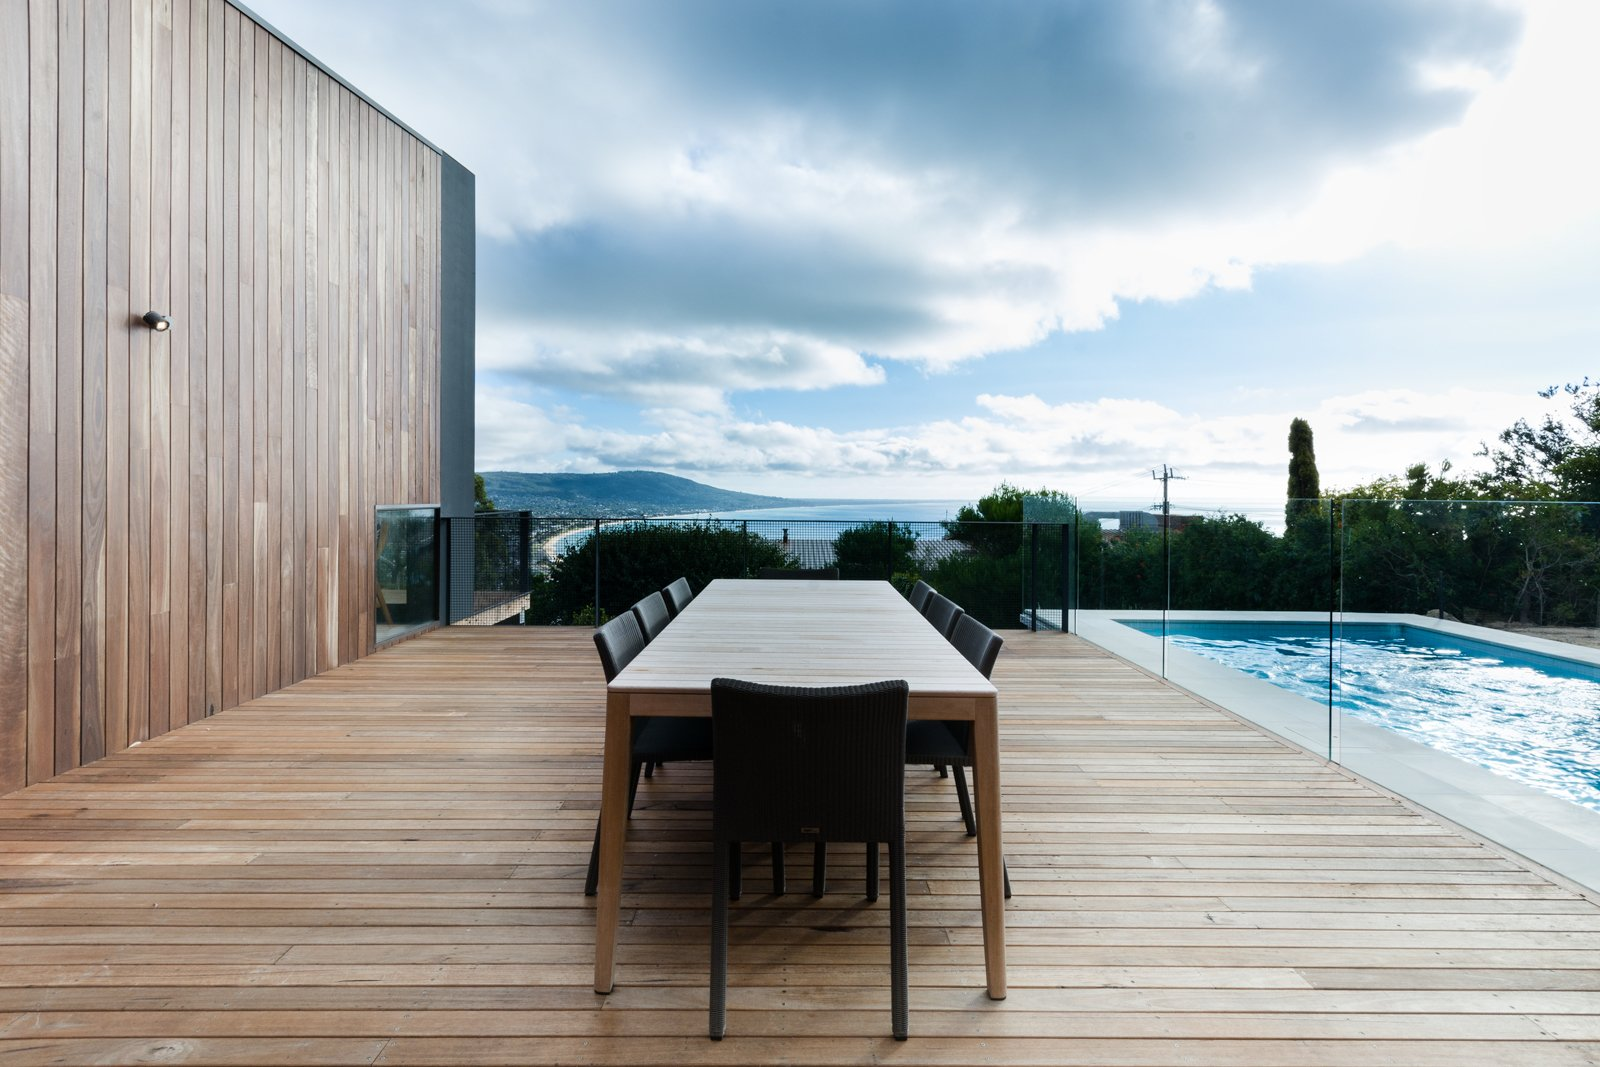 A Mood Outdoor Table by Studio Segers for Tribù is surrounded by Terra Outdoor Chairs by Bram Bollen, also for Tribù. They rest atop silvertop ash hardwood decking. Tagged: Outdoor, Large Pools, Tubs, Shower, Swimming Pools, Tubs, Shower, Large Patio, Porch, Deck, Wood Patio, Porch, Deck, Trees, Back Yard, and Metal Fences, Wall.  Photo 3 of 8 in An Australian Beach Home with Stunning Ocean Views from Martha